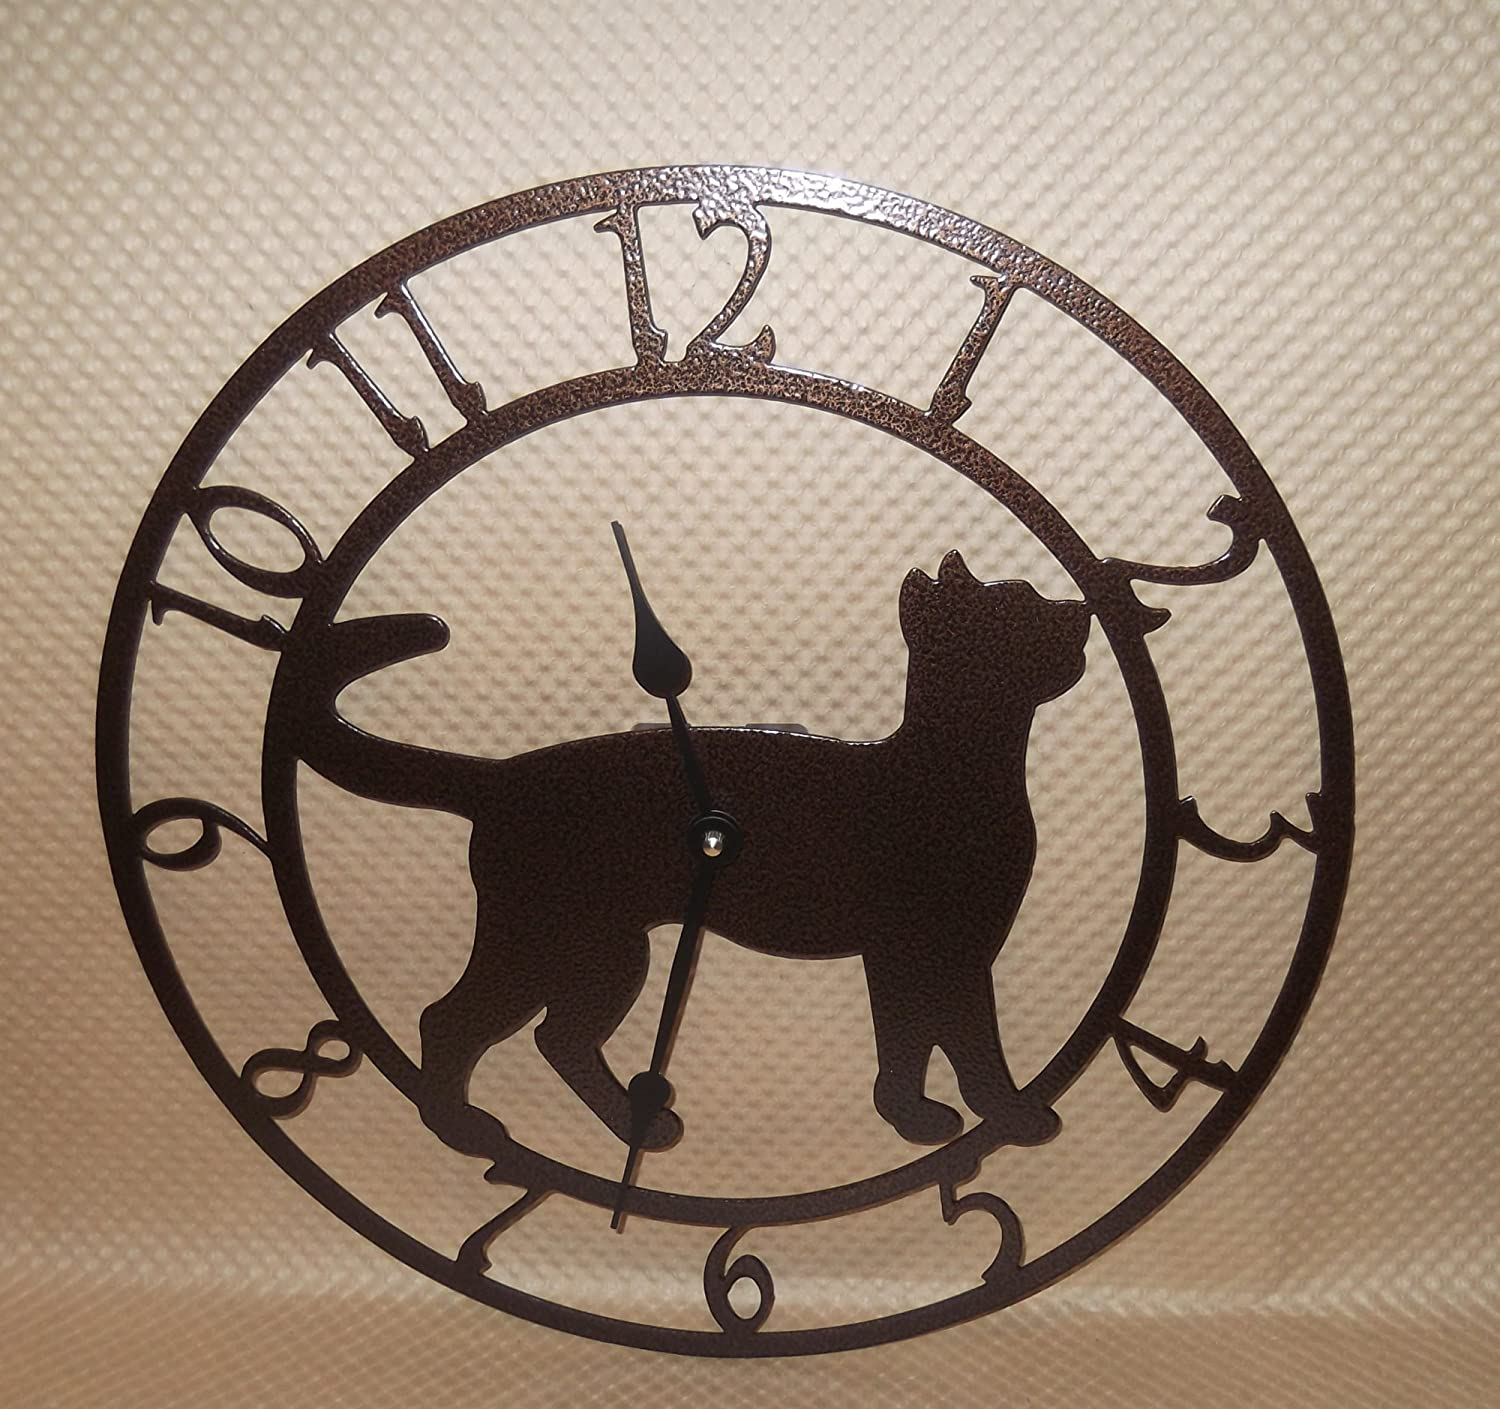 Cat Wall Clock. Kitten. Copper Vein Color. Handmade in USA. 15 Inch Wide. Quartz Movement.